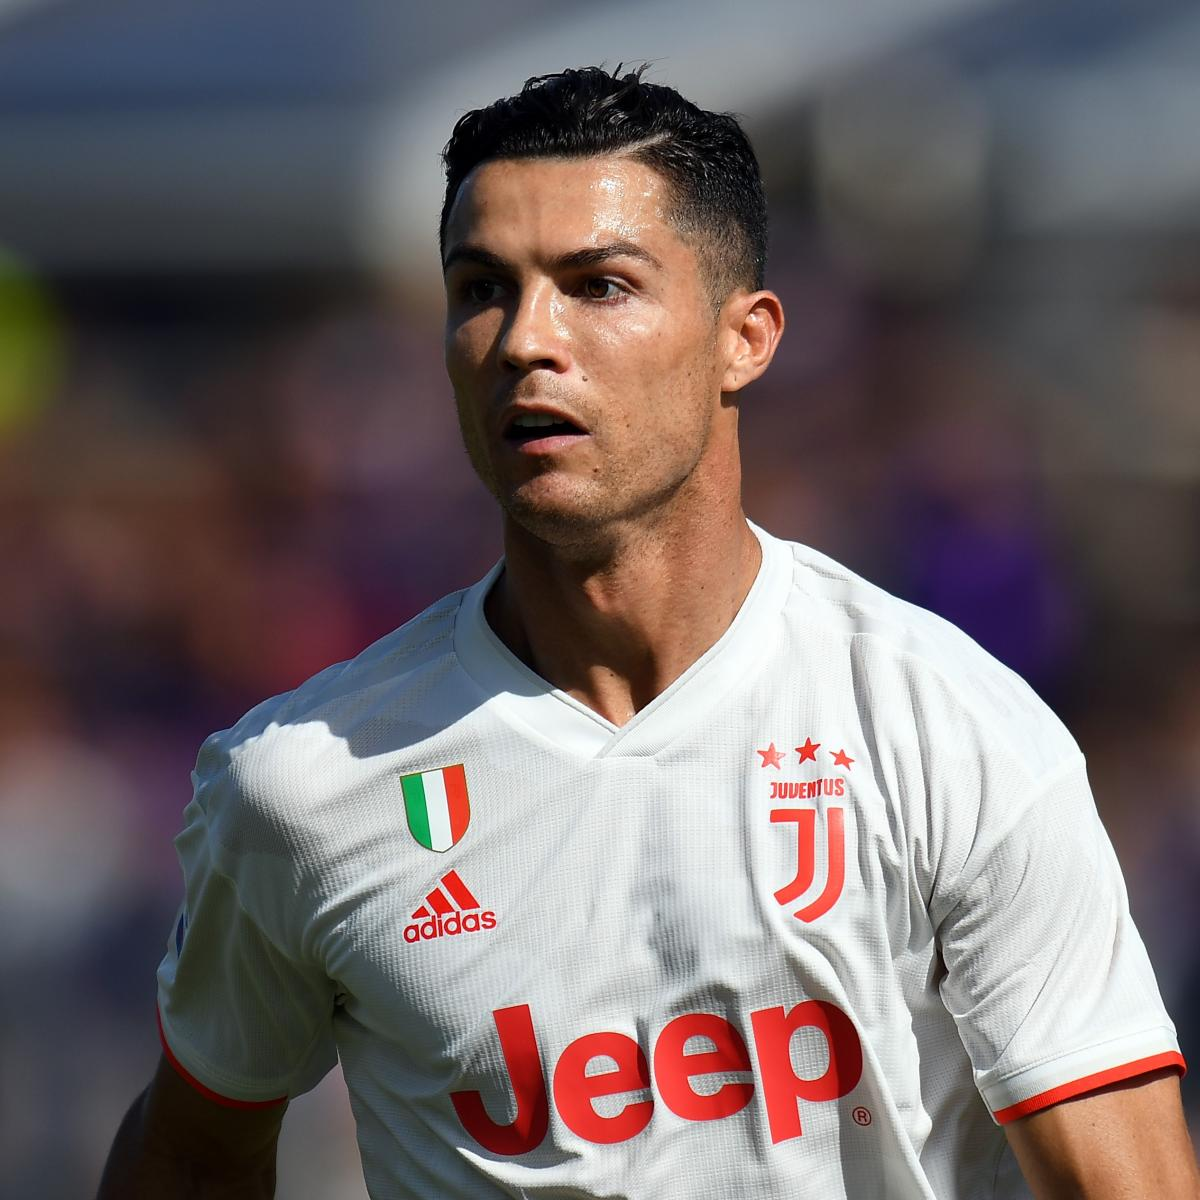 Cristiano Ronaldo Cries at Video of Late Father, Talks Rape Case Allegations